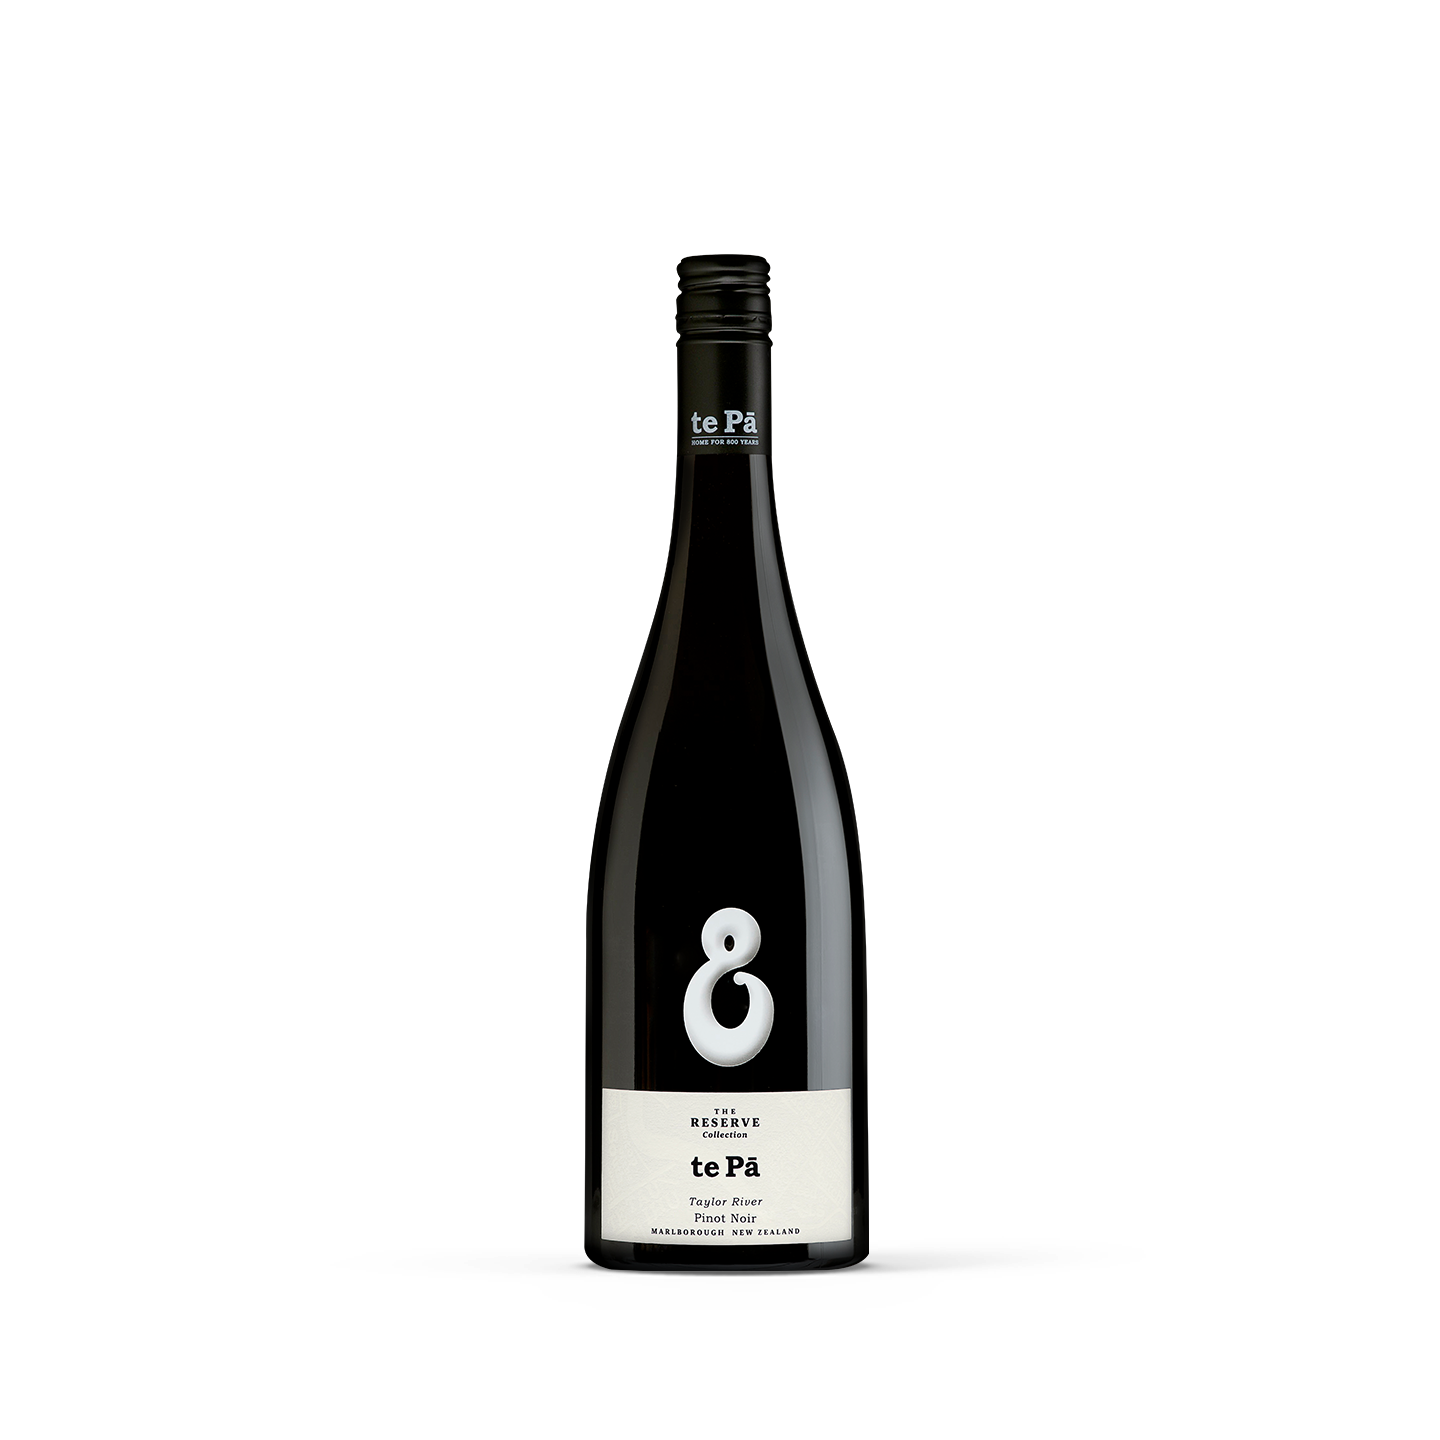 te Pā Reserve Collection Taylor River Pinot Noir